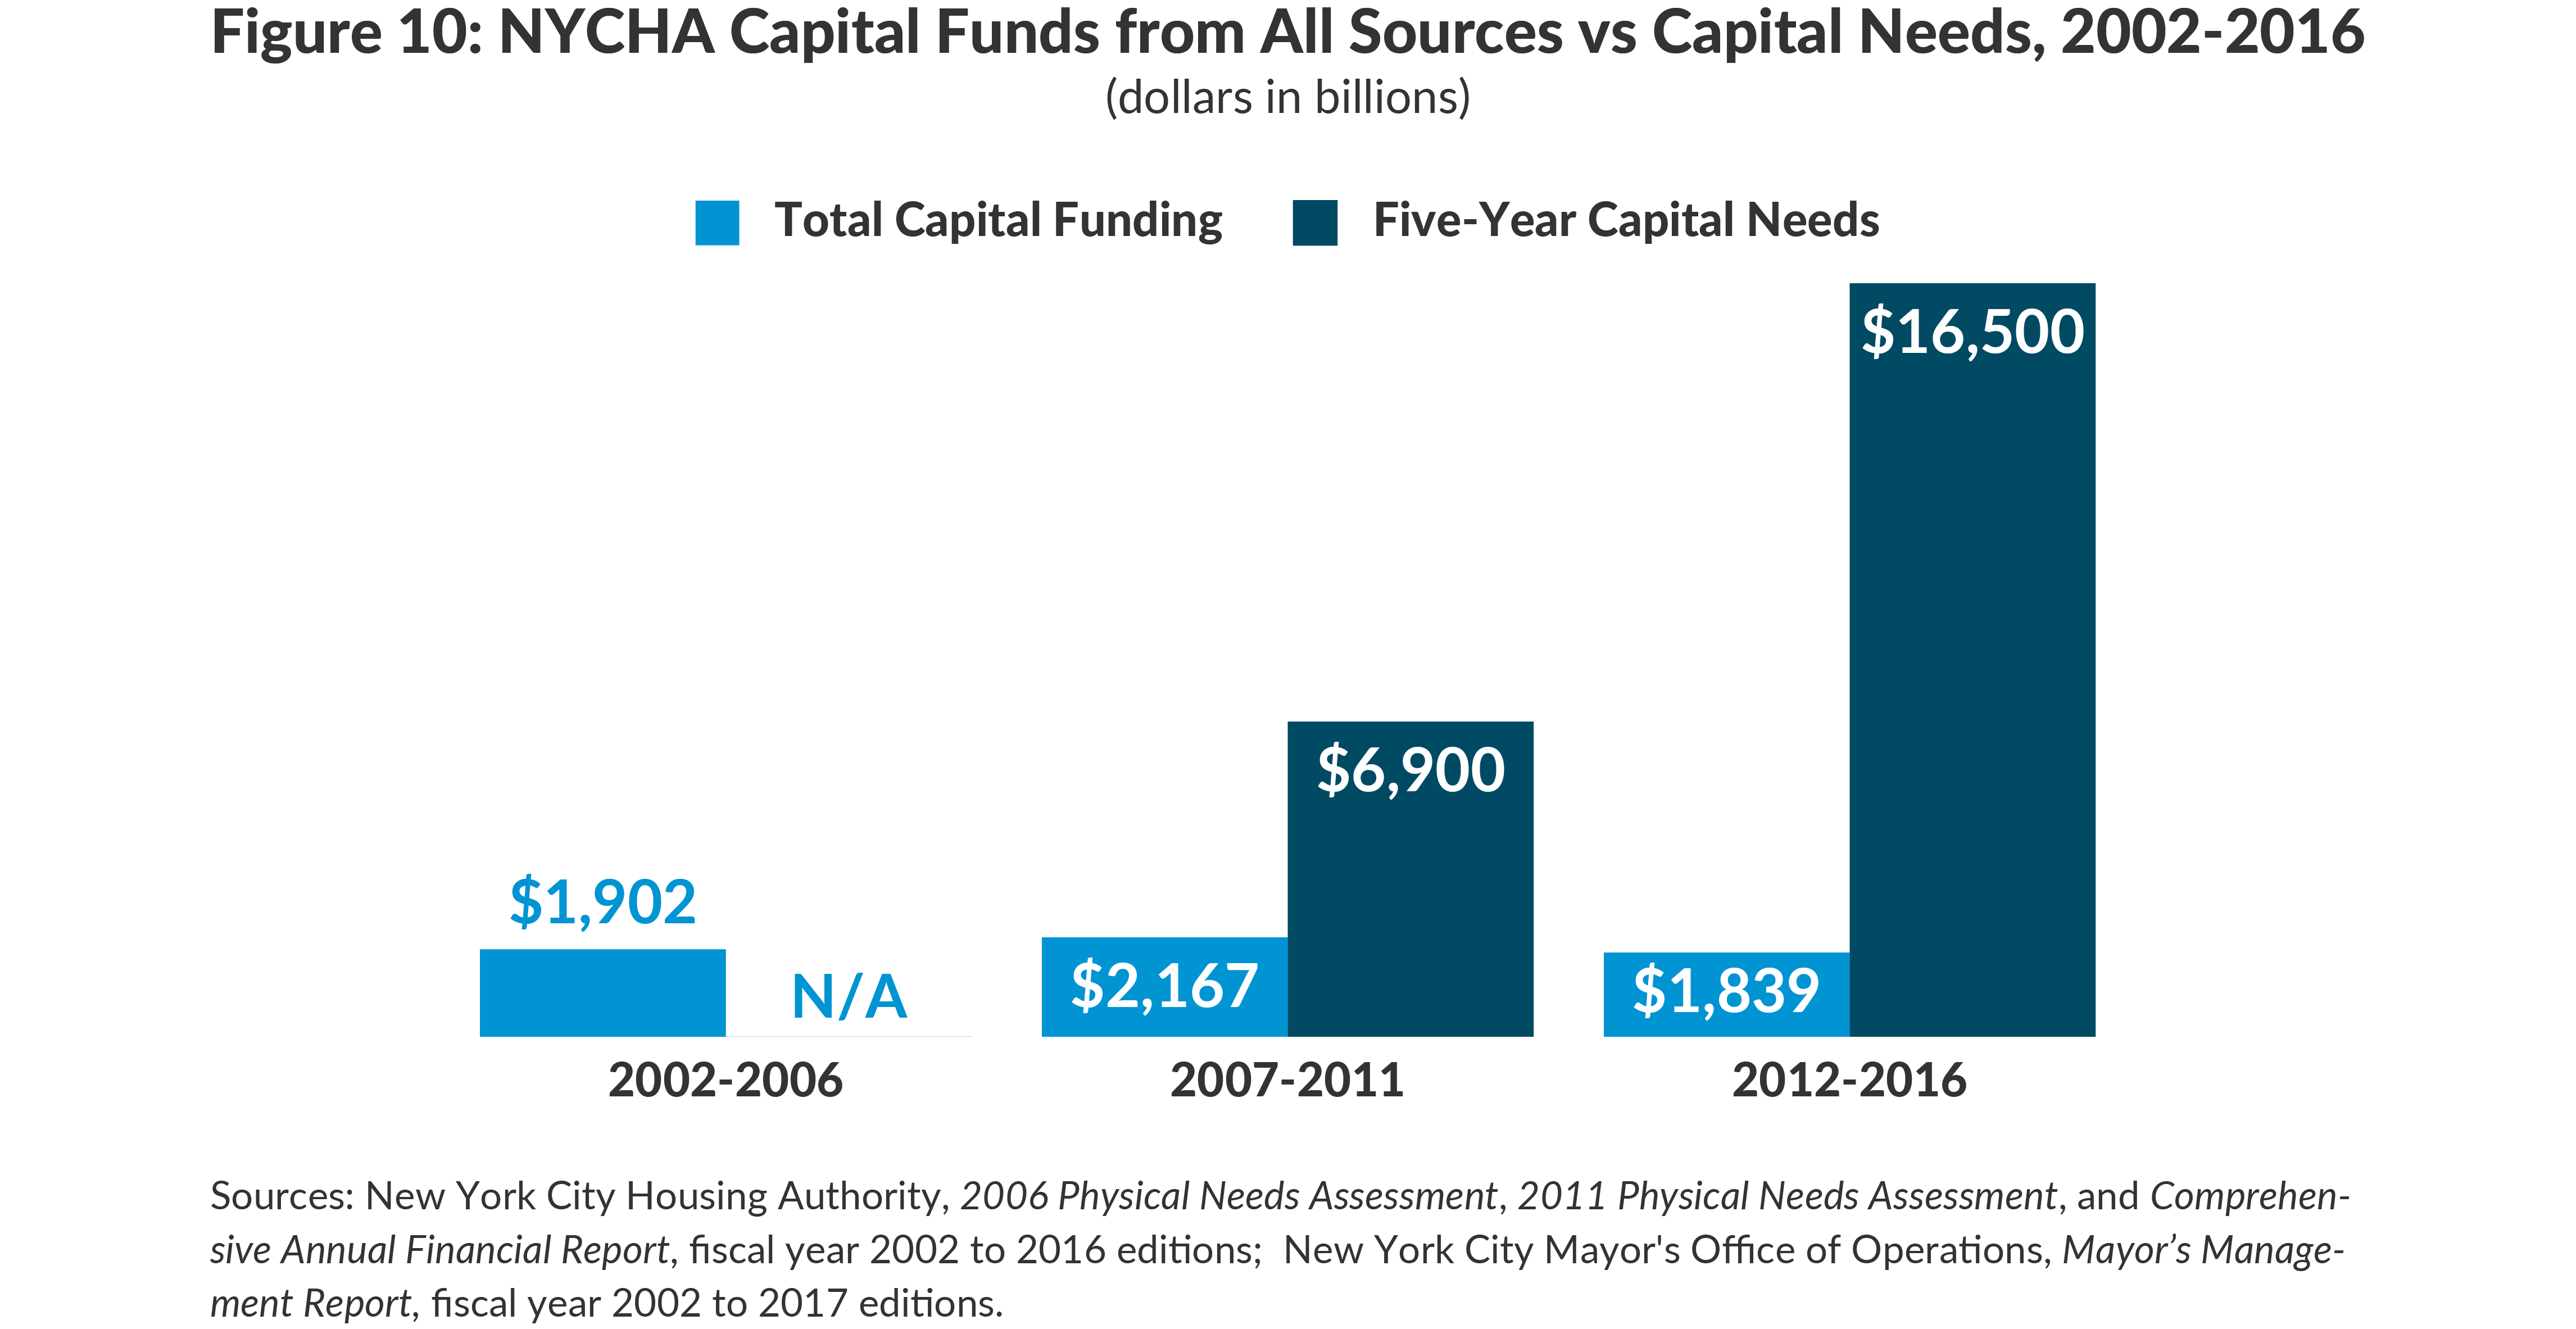 Figure 10: NYCHA Capital Funds from All Sources vs Capital Needs, 2002-2016